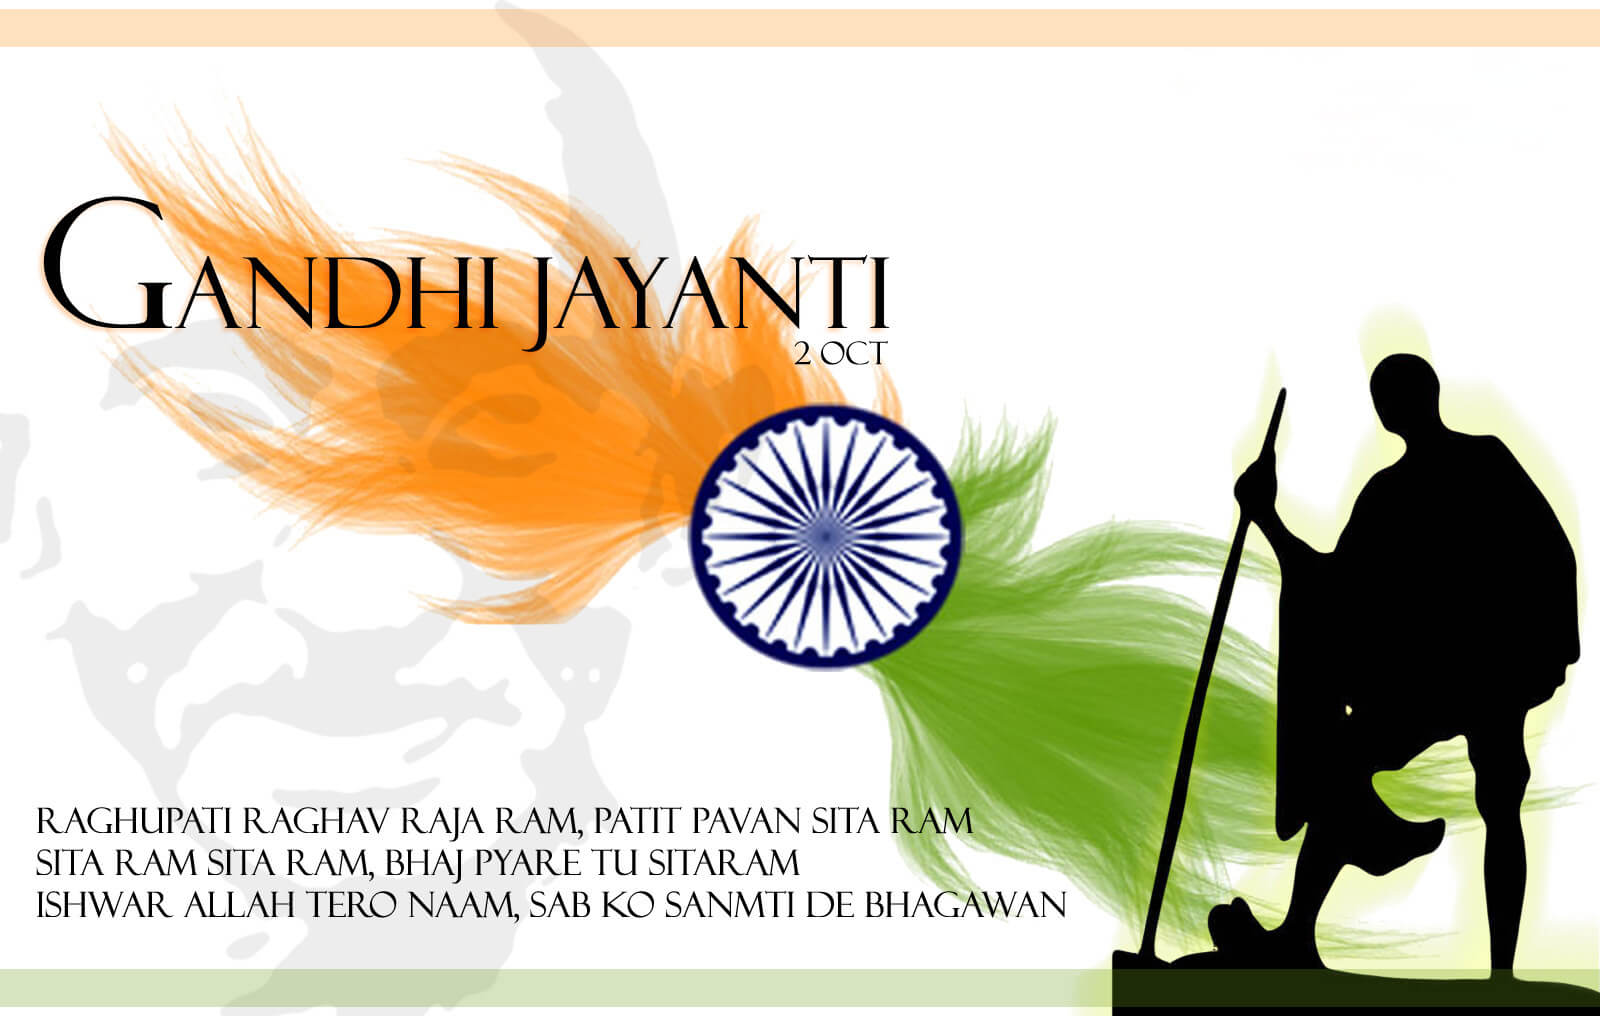 gandhi jayanti october 2 pc hd wallpaper